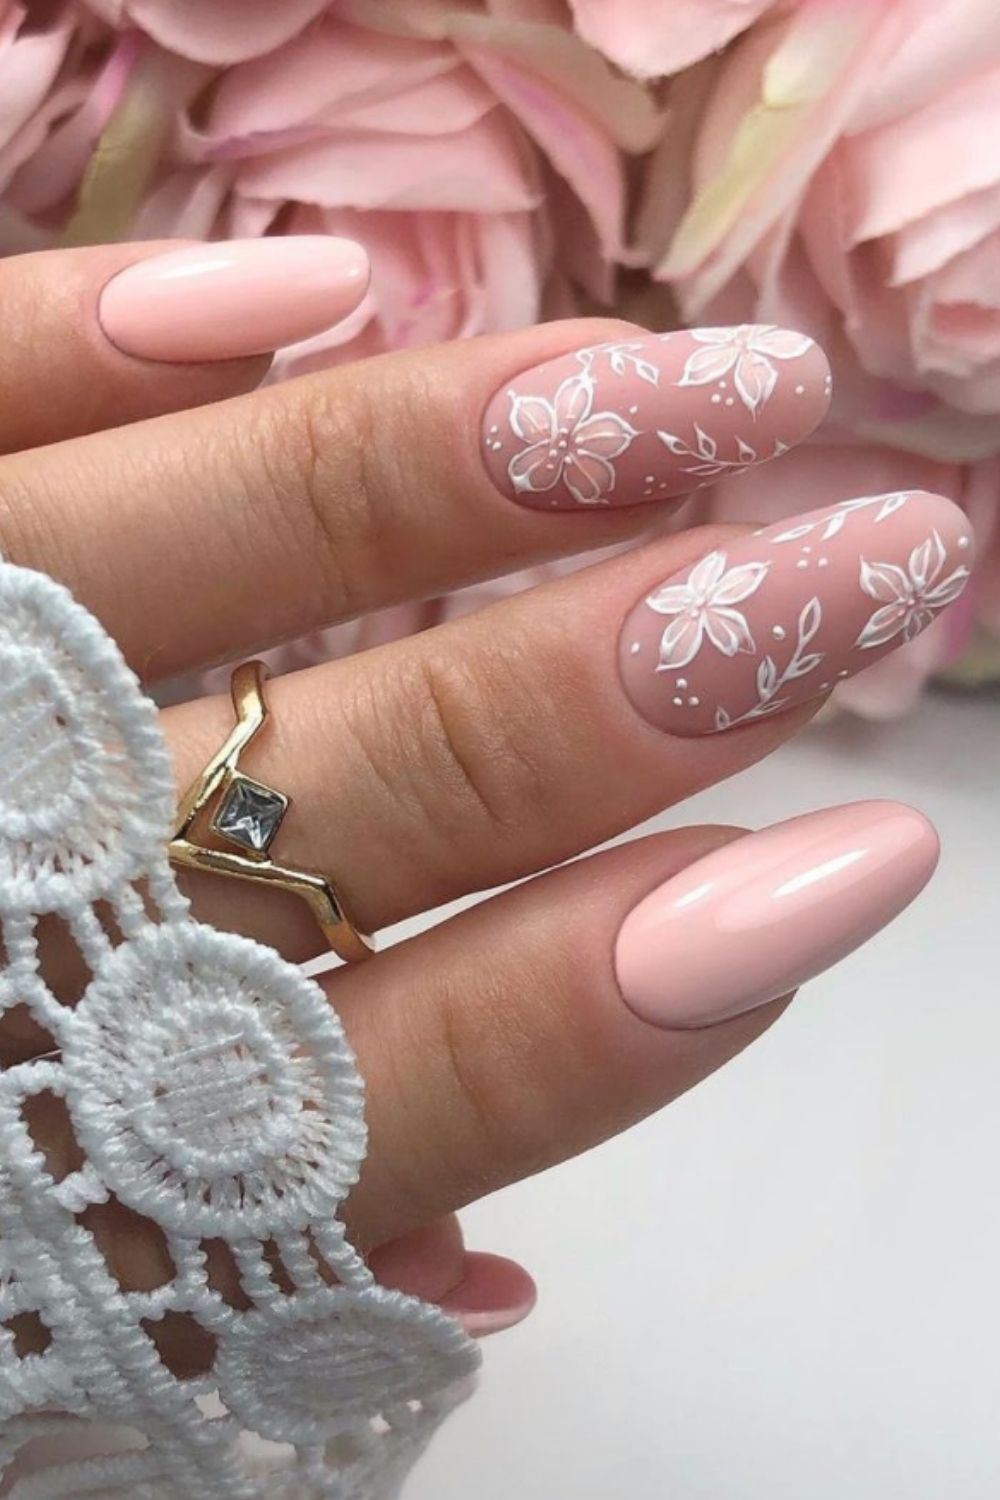 Pink almond nails with flowers